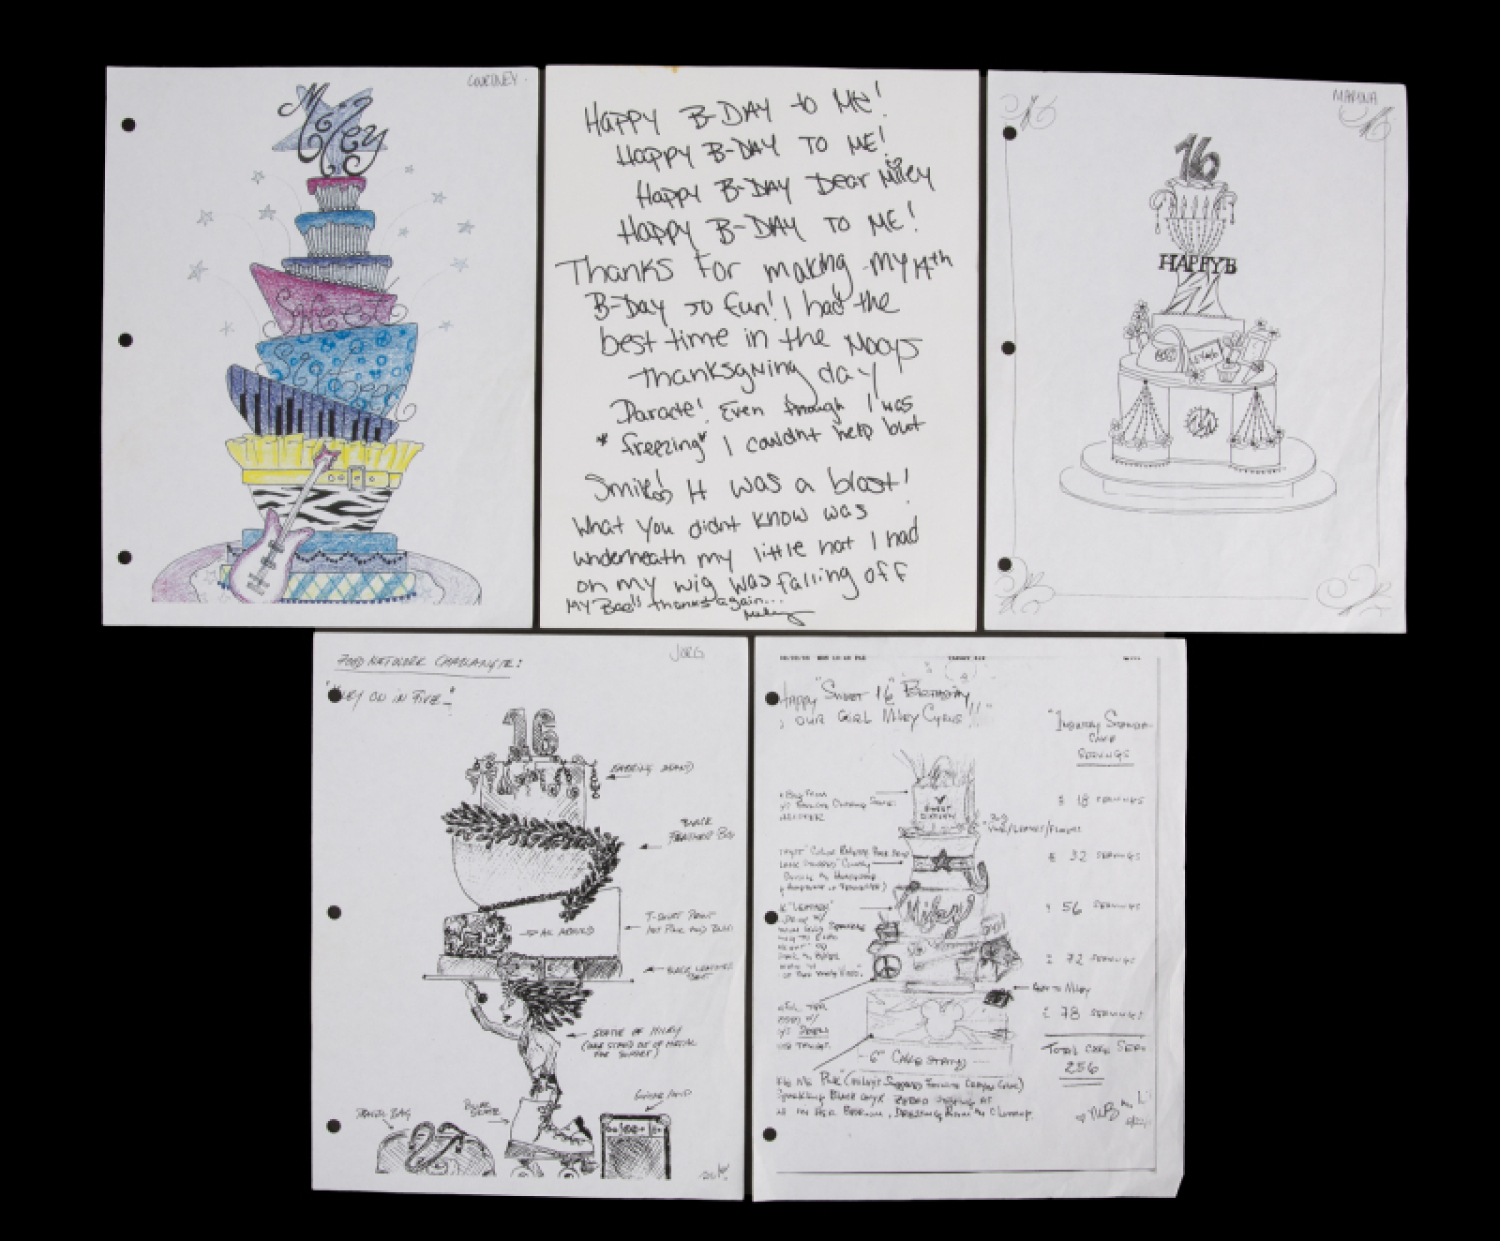 Magnificent Miley Cyrus Birthday Note And Cake Designs Funny Birthday Cards Online Alyptdamsfinfo